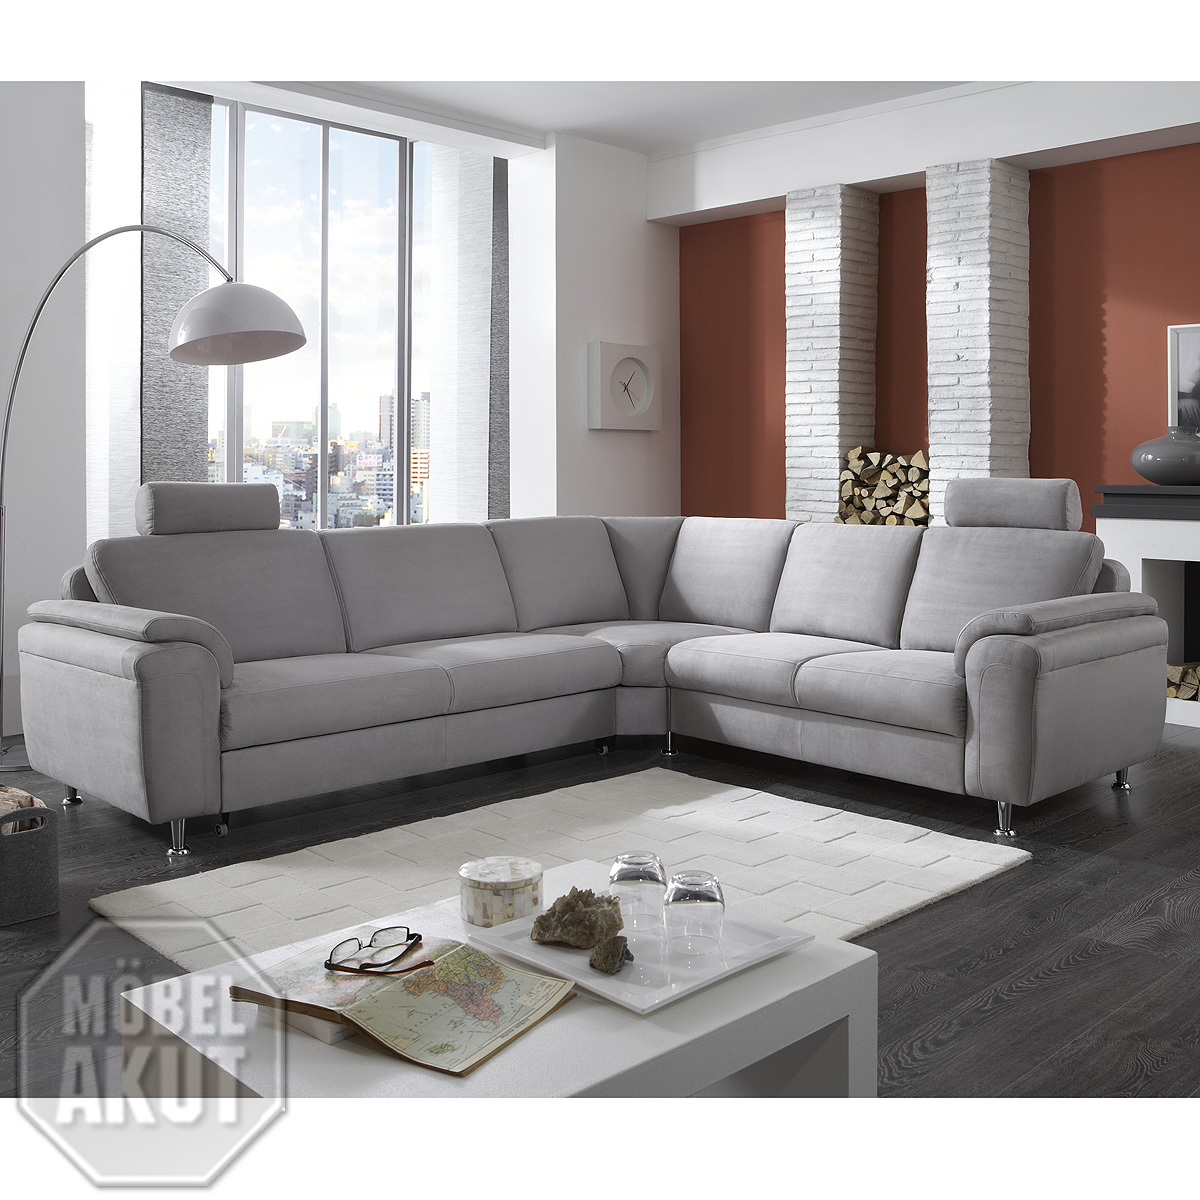 wohnlandschaft oxfort eck garnitur sofa stoff alu grau mit funktion ebay. Black Bedroom Furniture Sets. Home Design Ideas